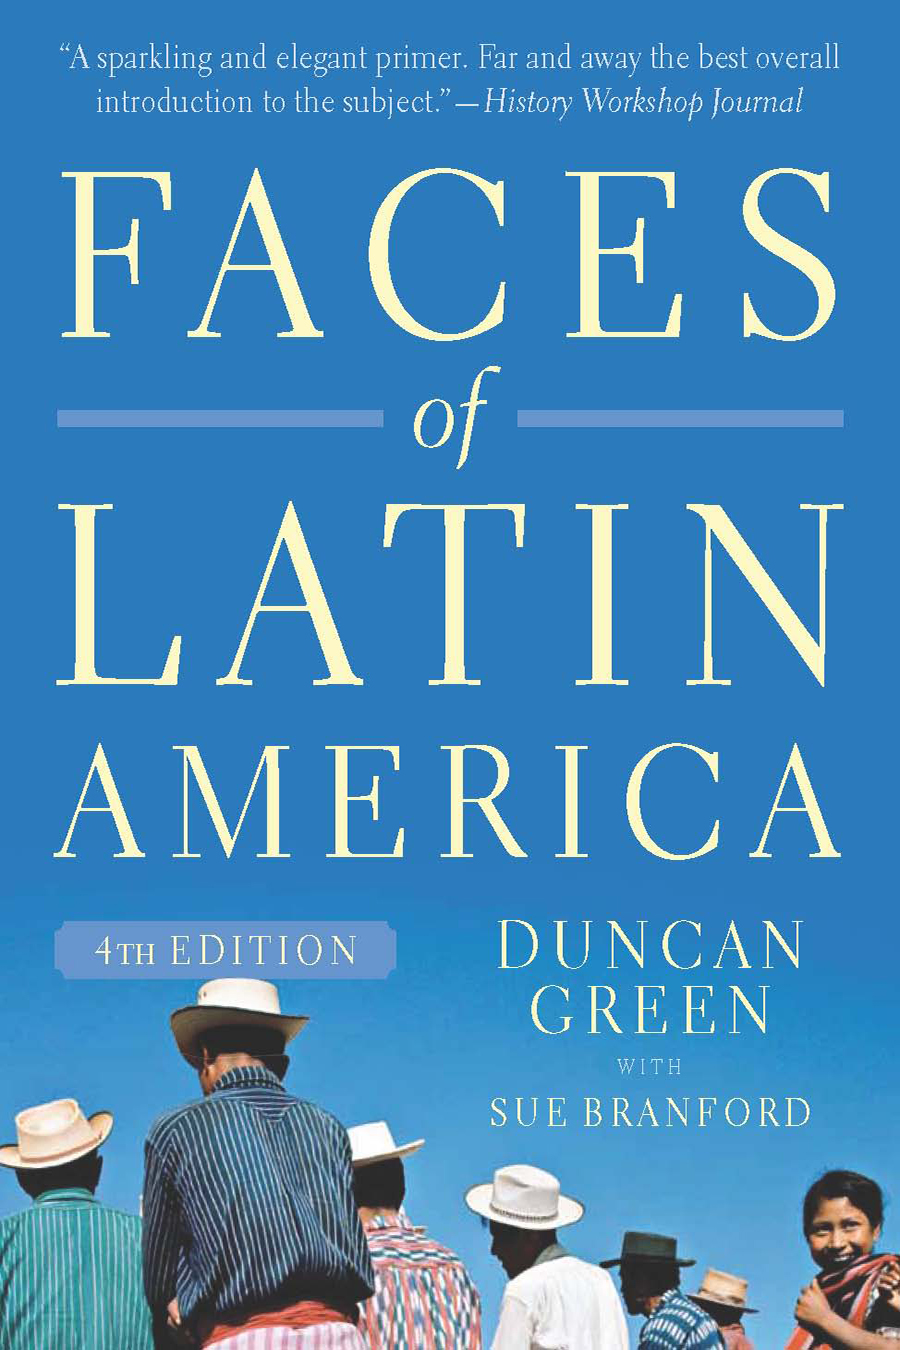 Faces of Latin America, 4th Edition (revised) by Duncan Green and Sue Branford